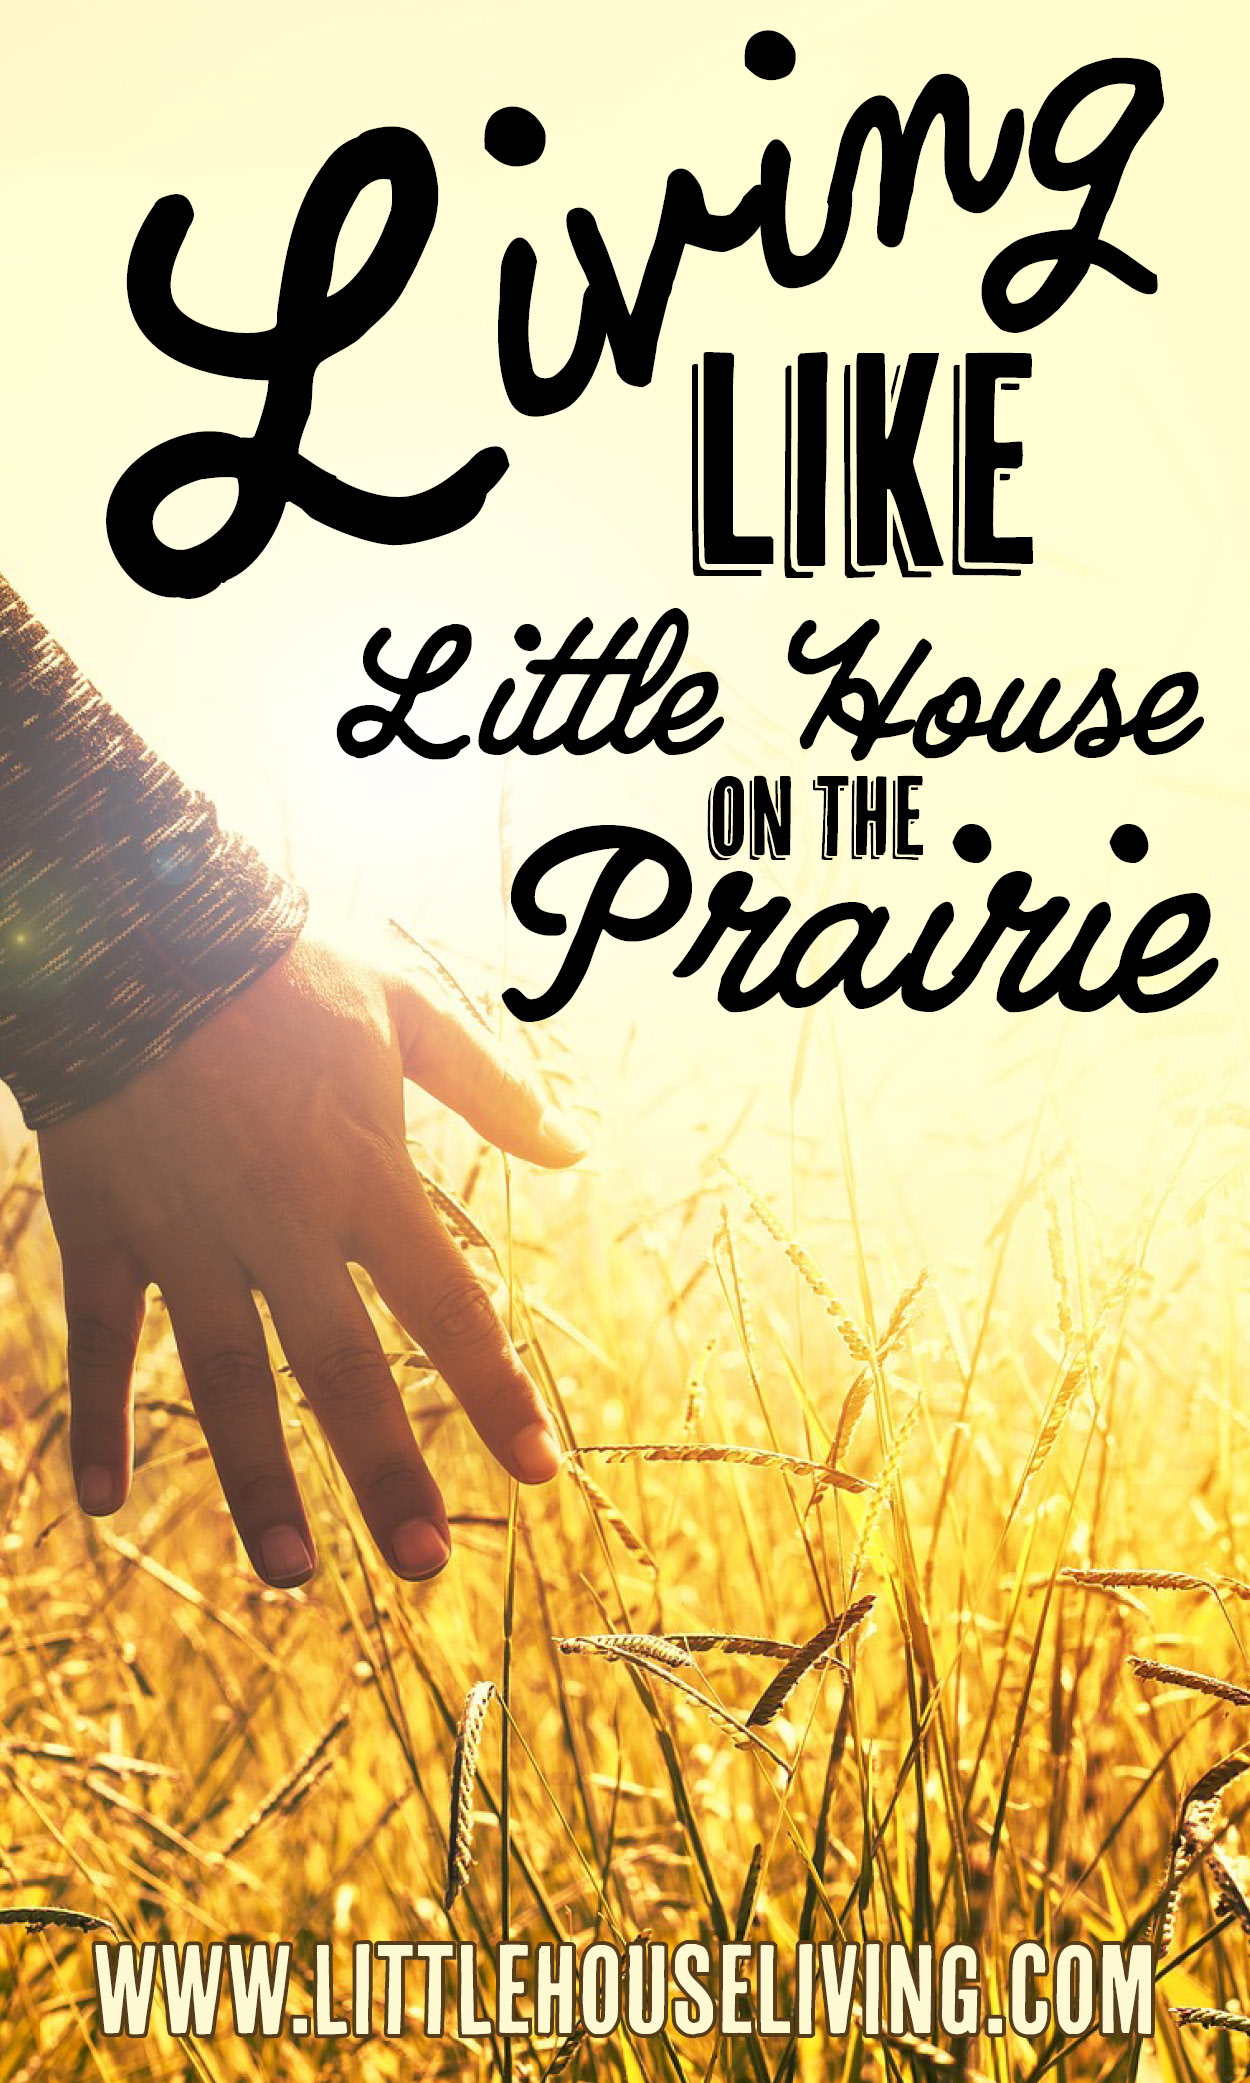 Ever wondered what you might be able to glean from the Little House books as an adult? This series is an in-depth look at some key passages in this book. #littlehouse #littlehouseliving #littlehouseontheprairie #livinglikelittlehouse